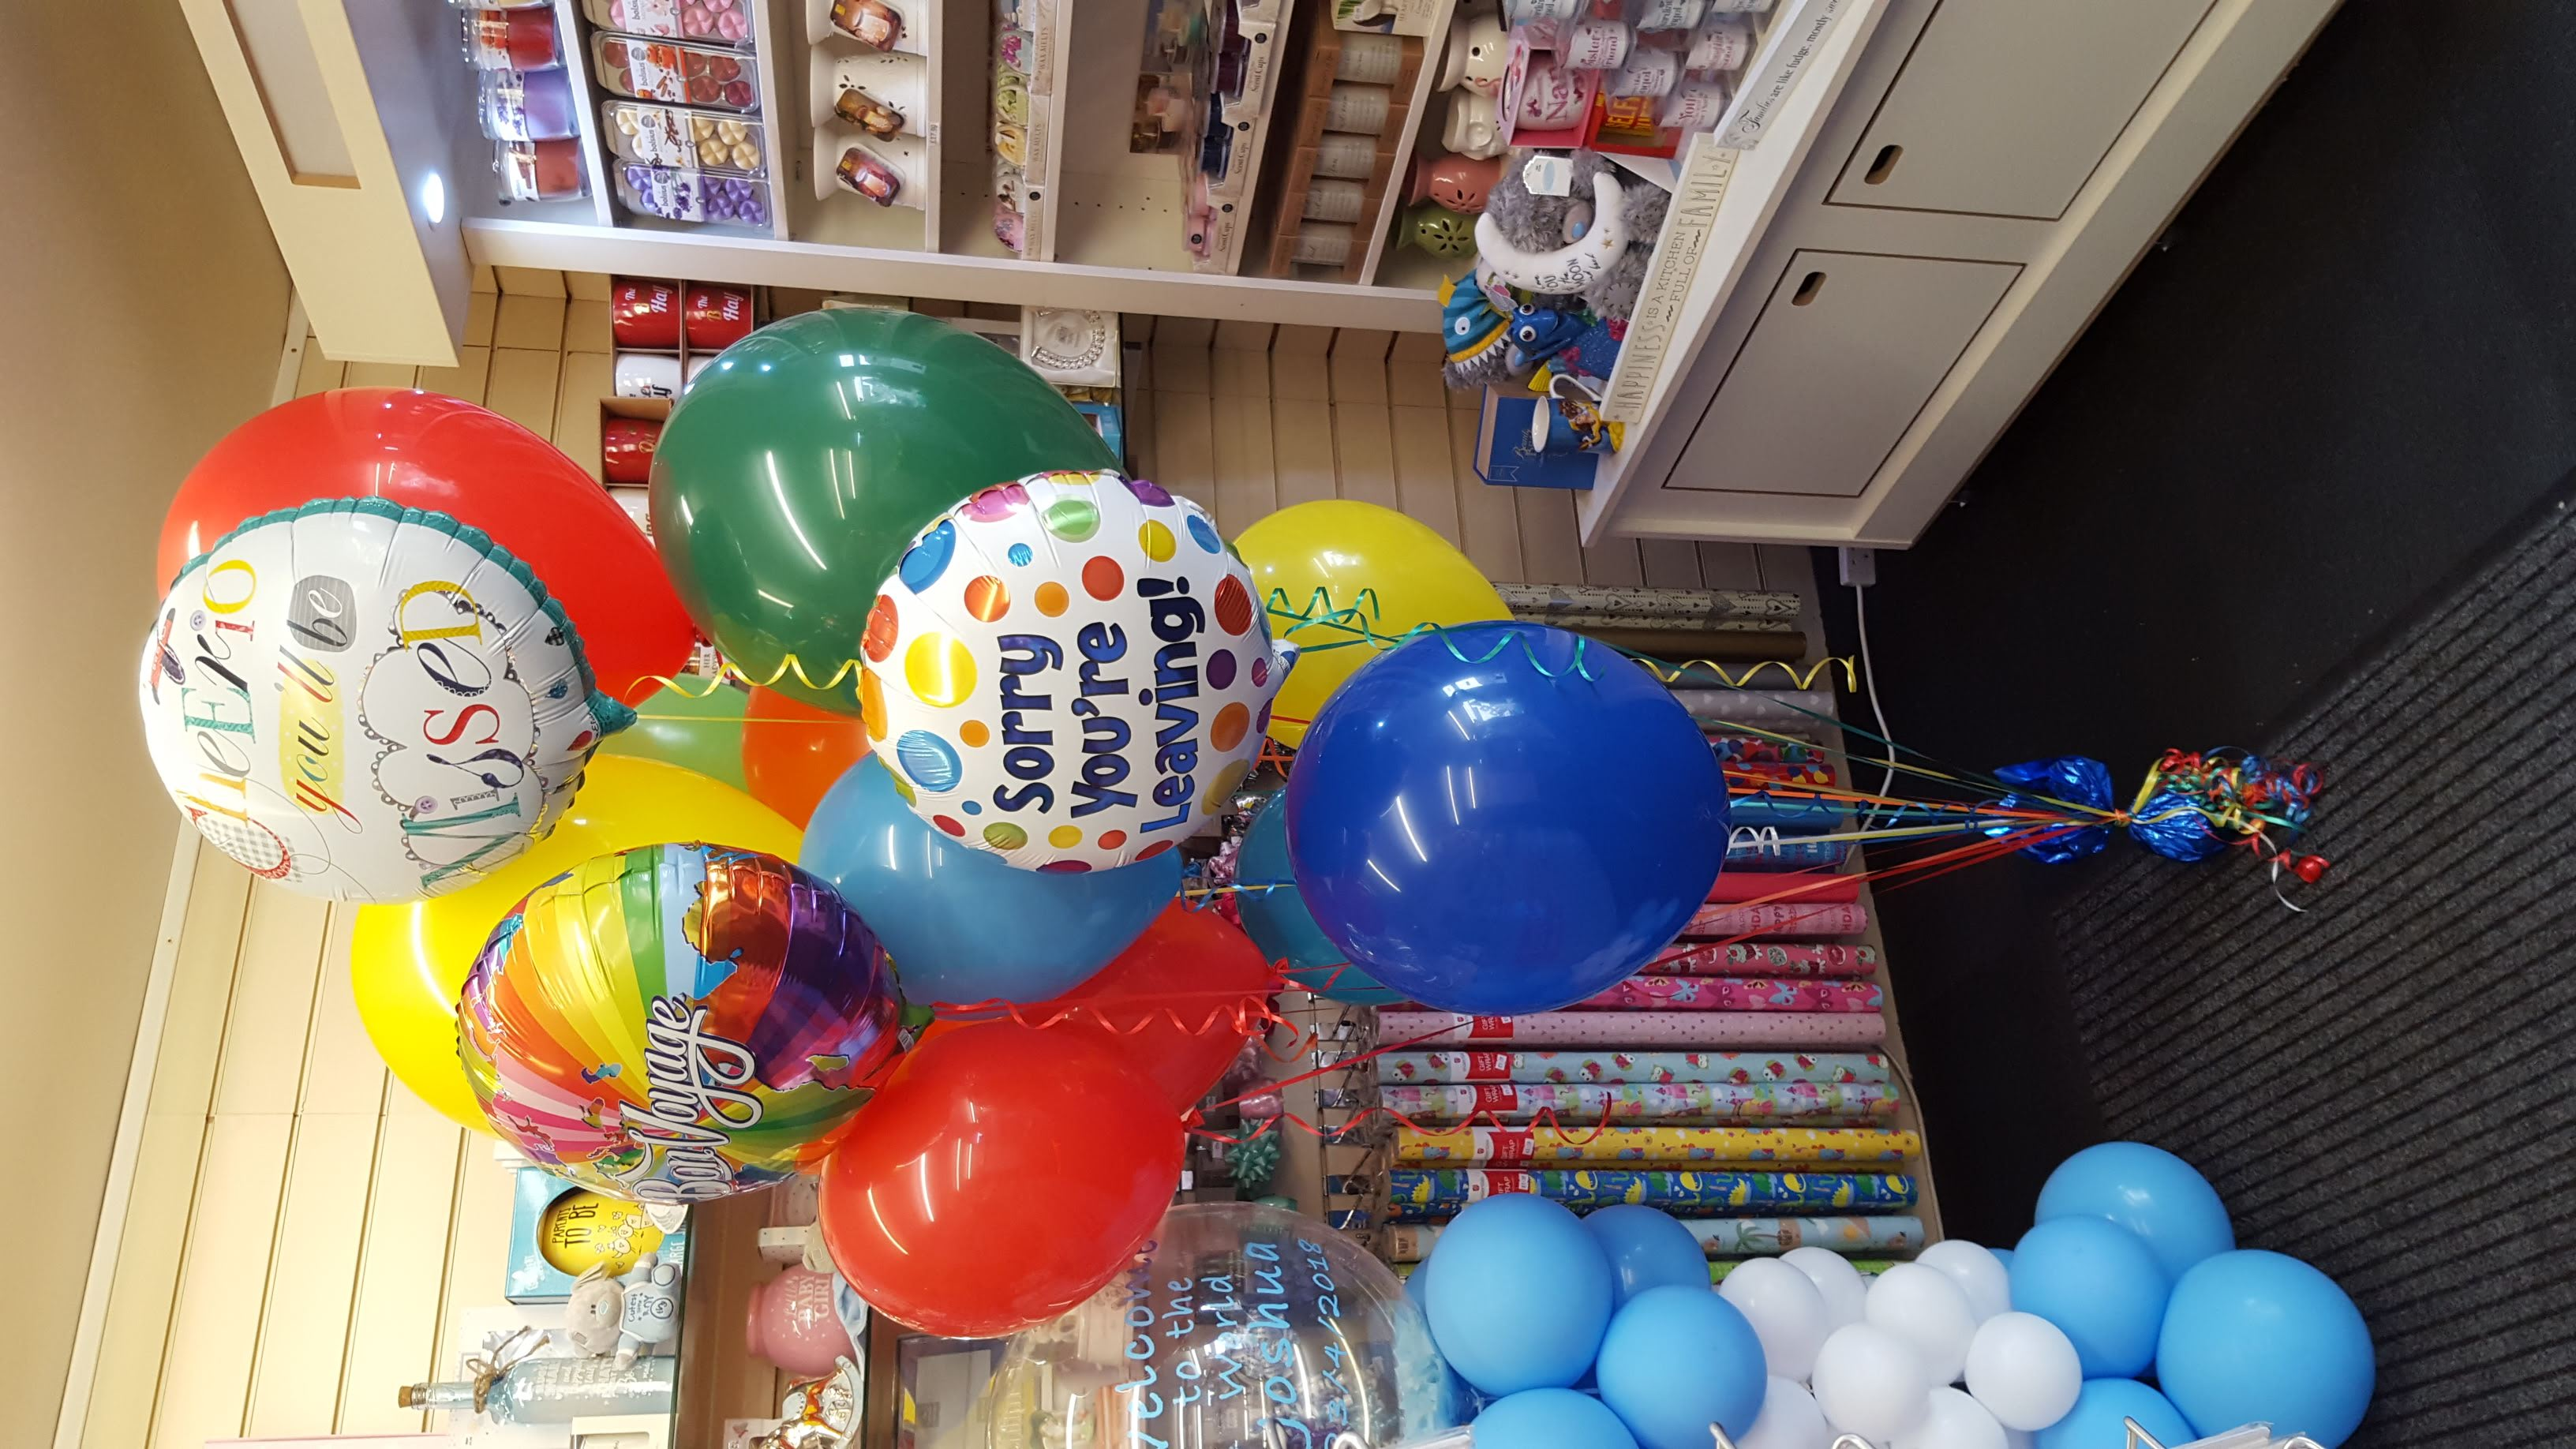 Leaving Bouquet of Balloons